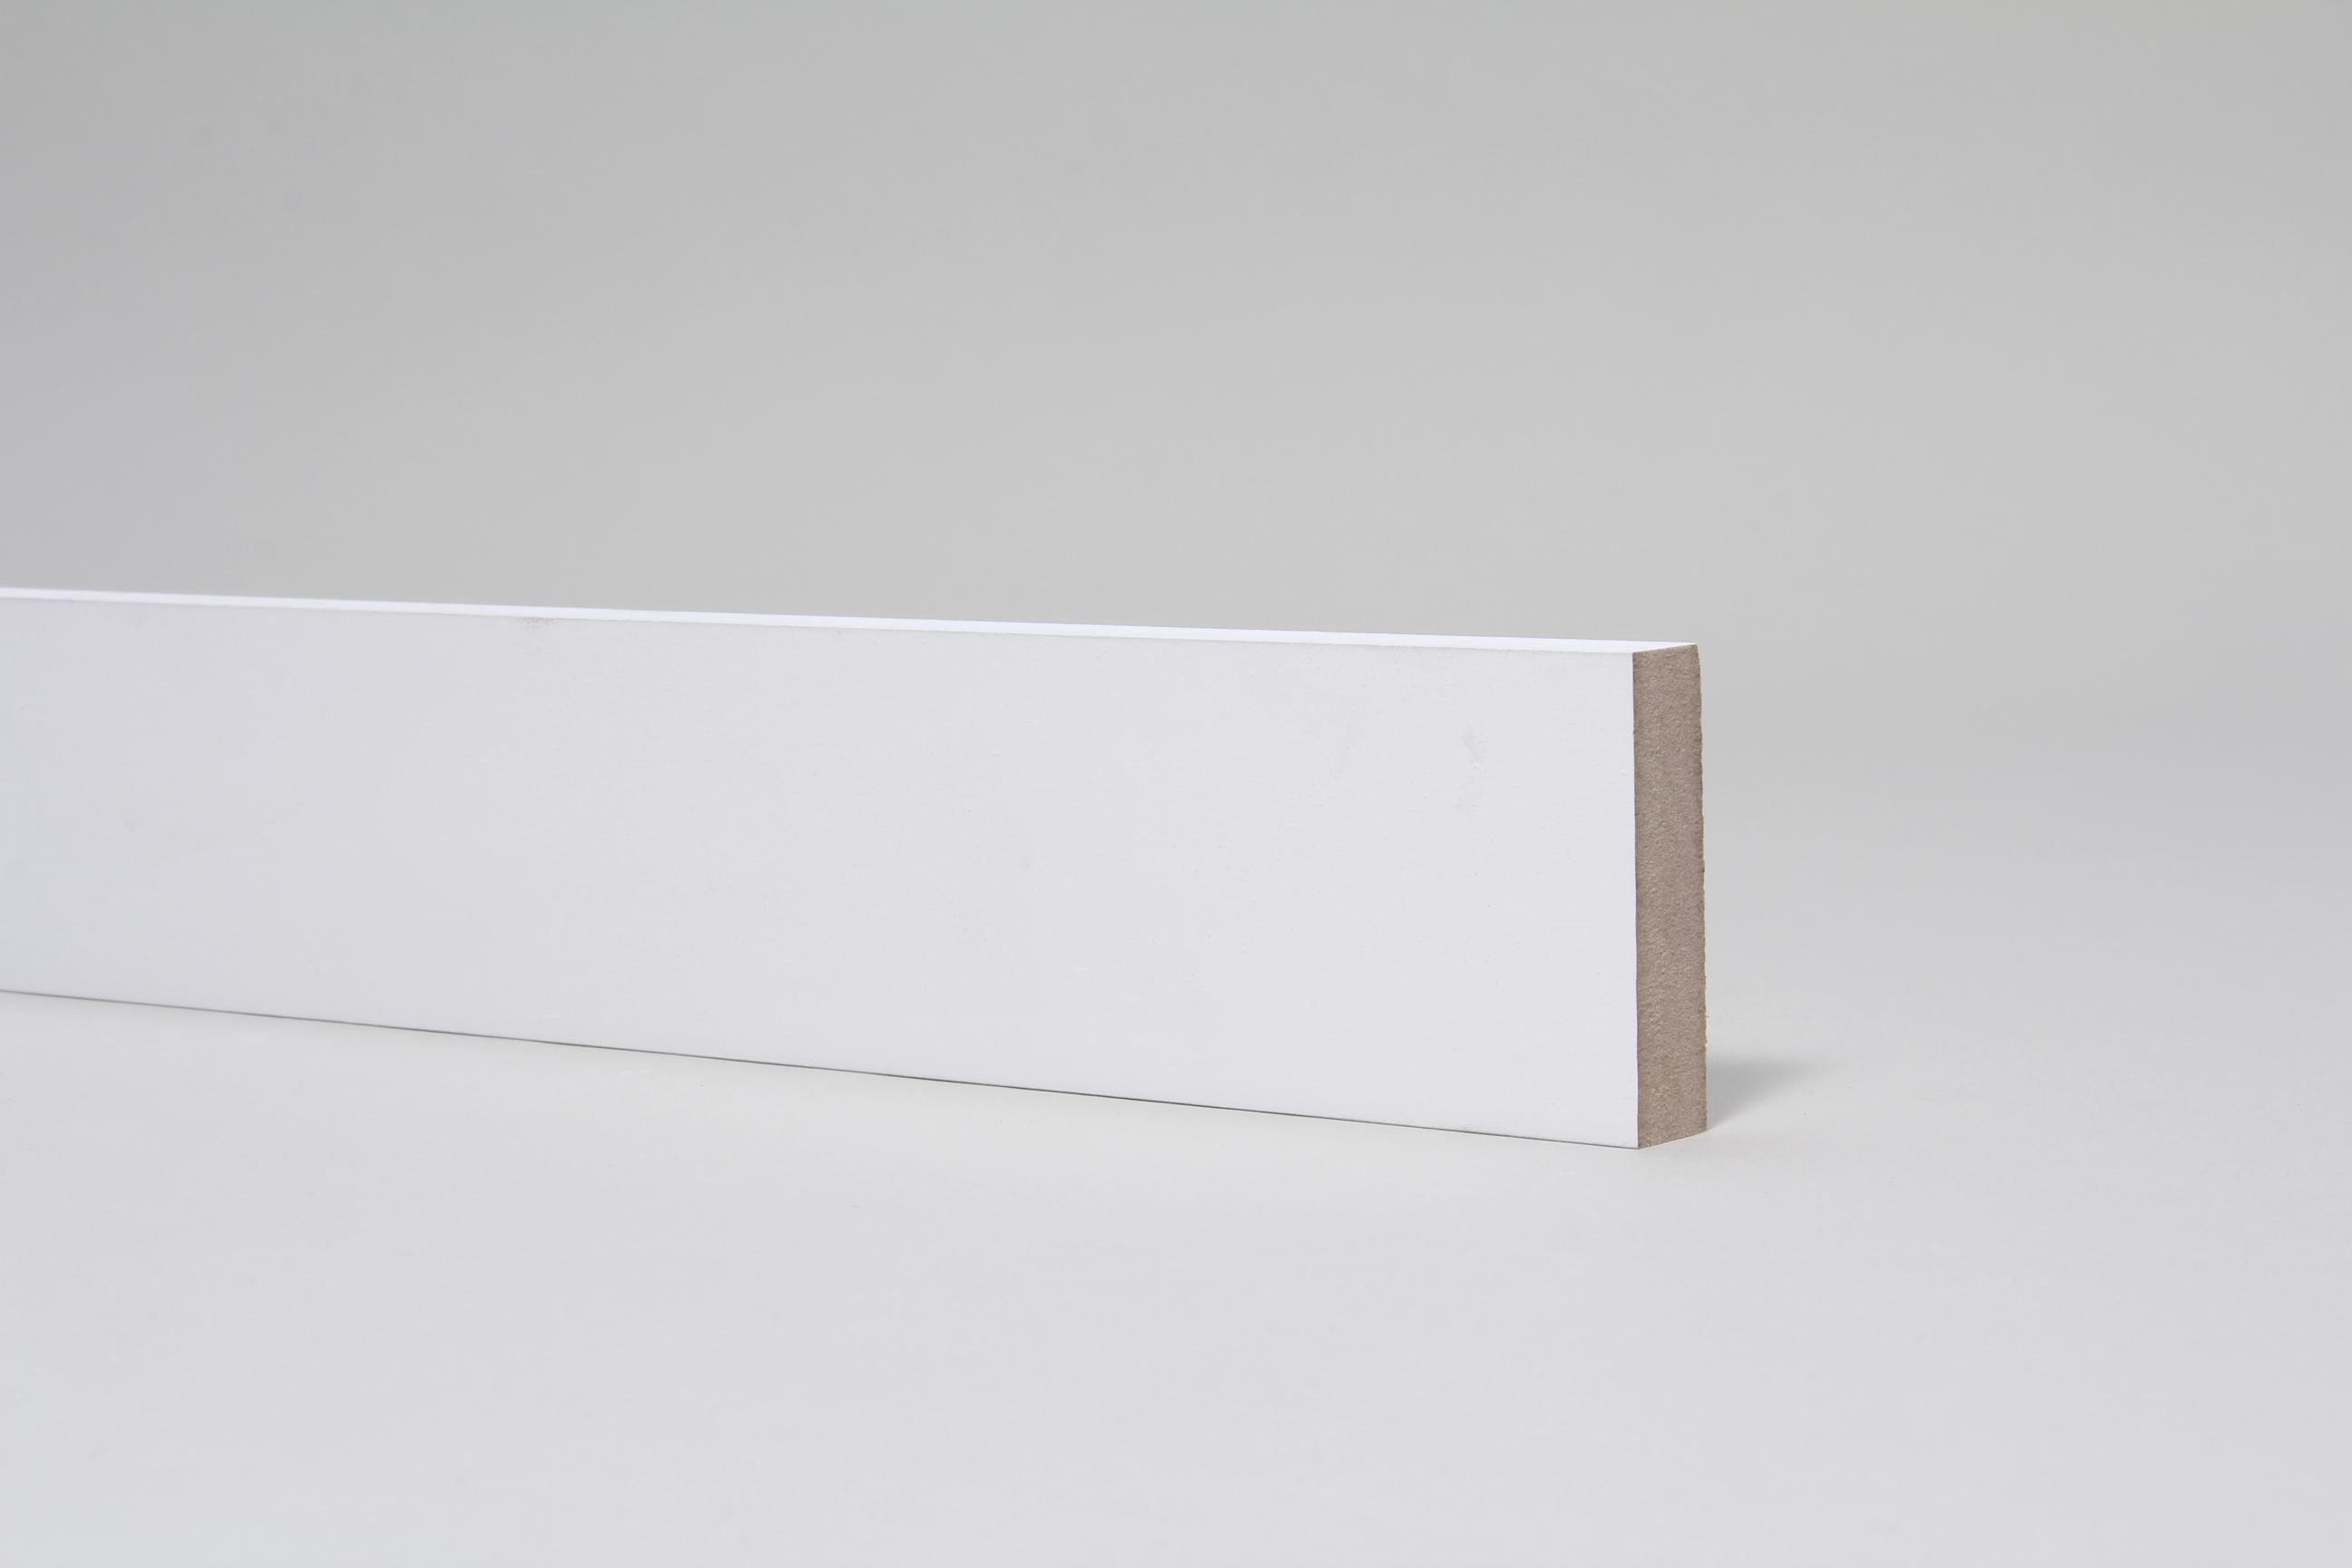 Plain Square Edge 18mm x 68mm x 4.4 Mtr Primed